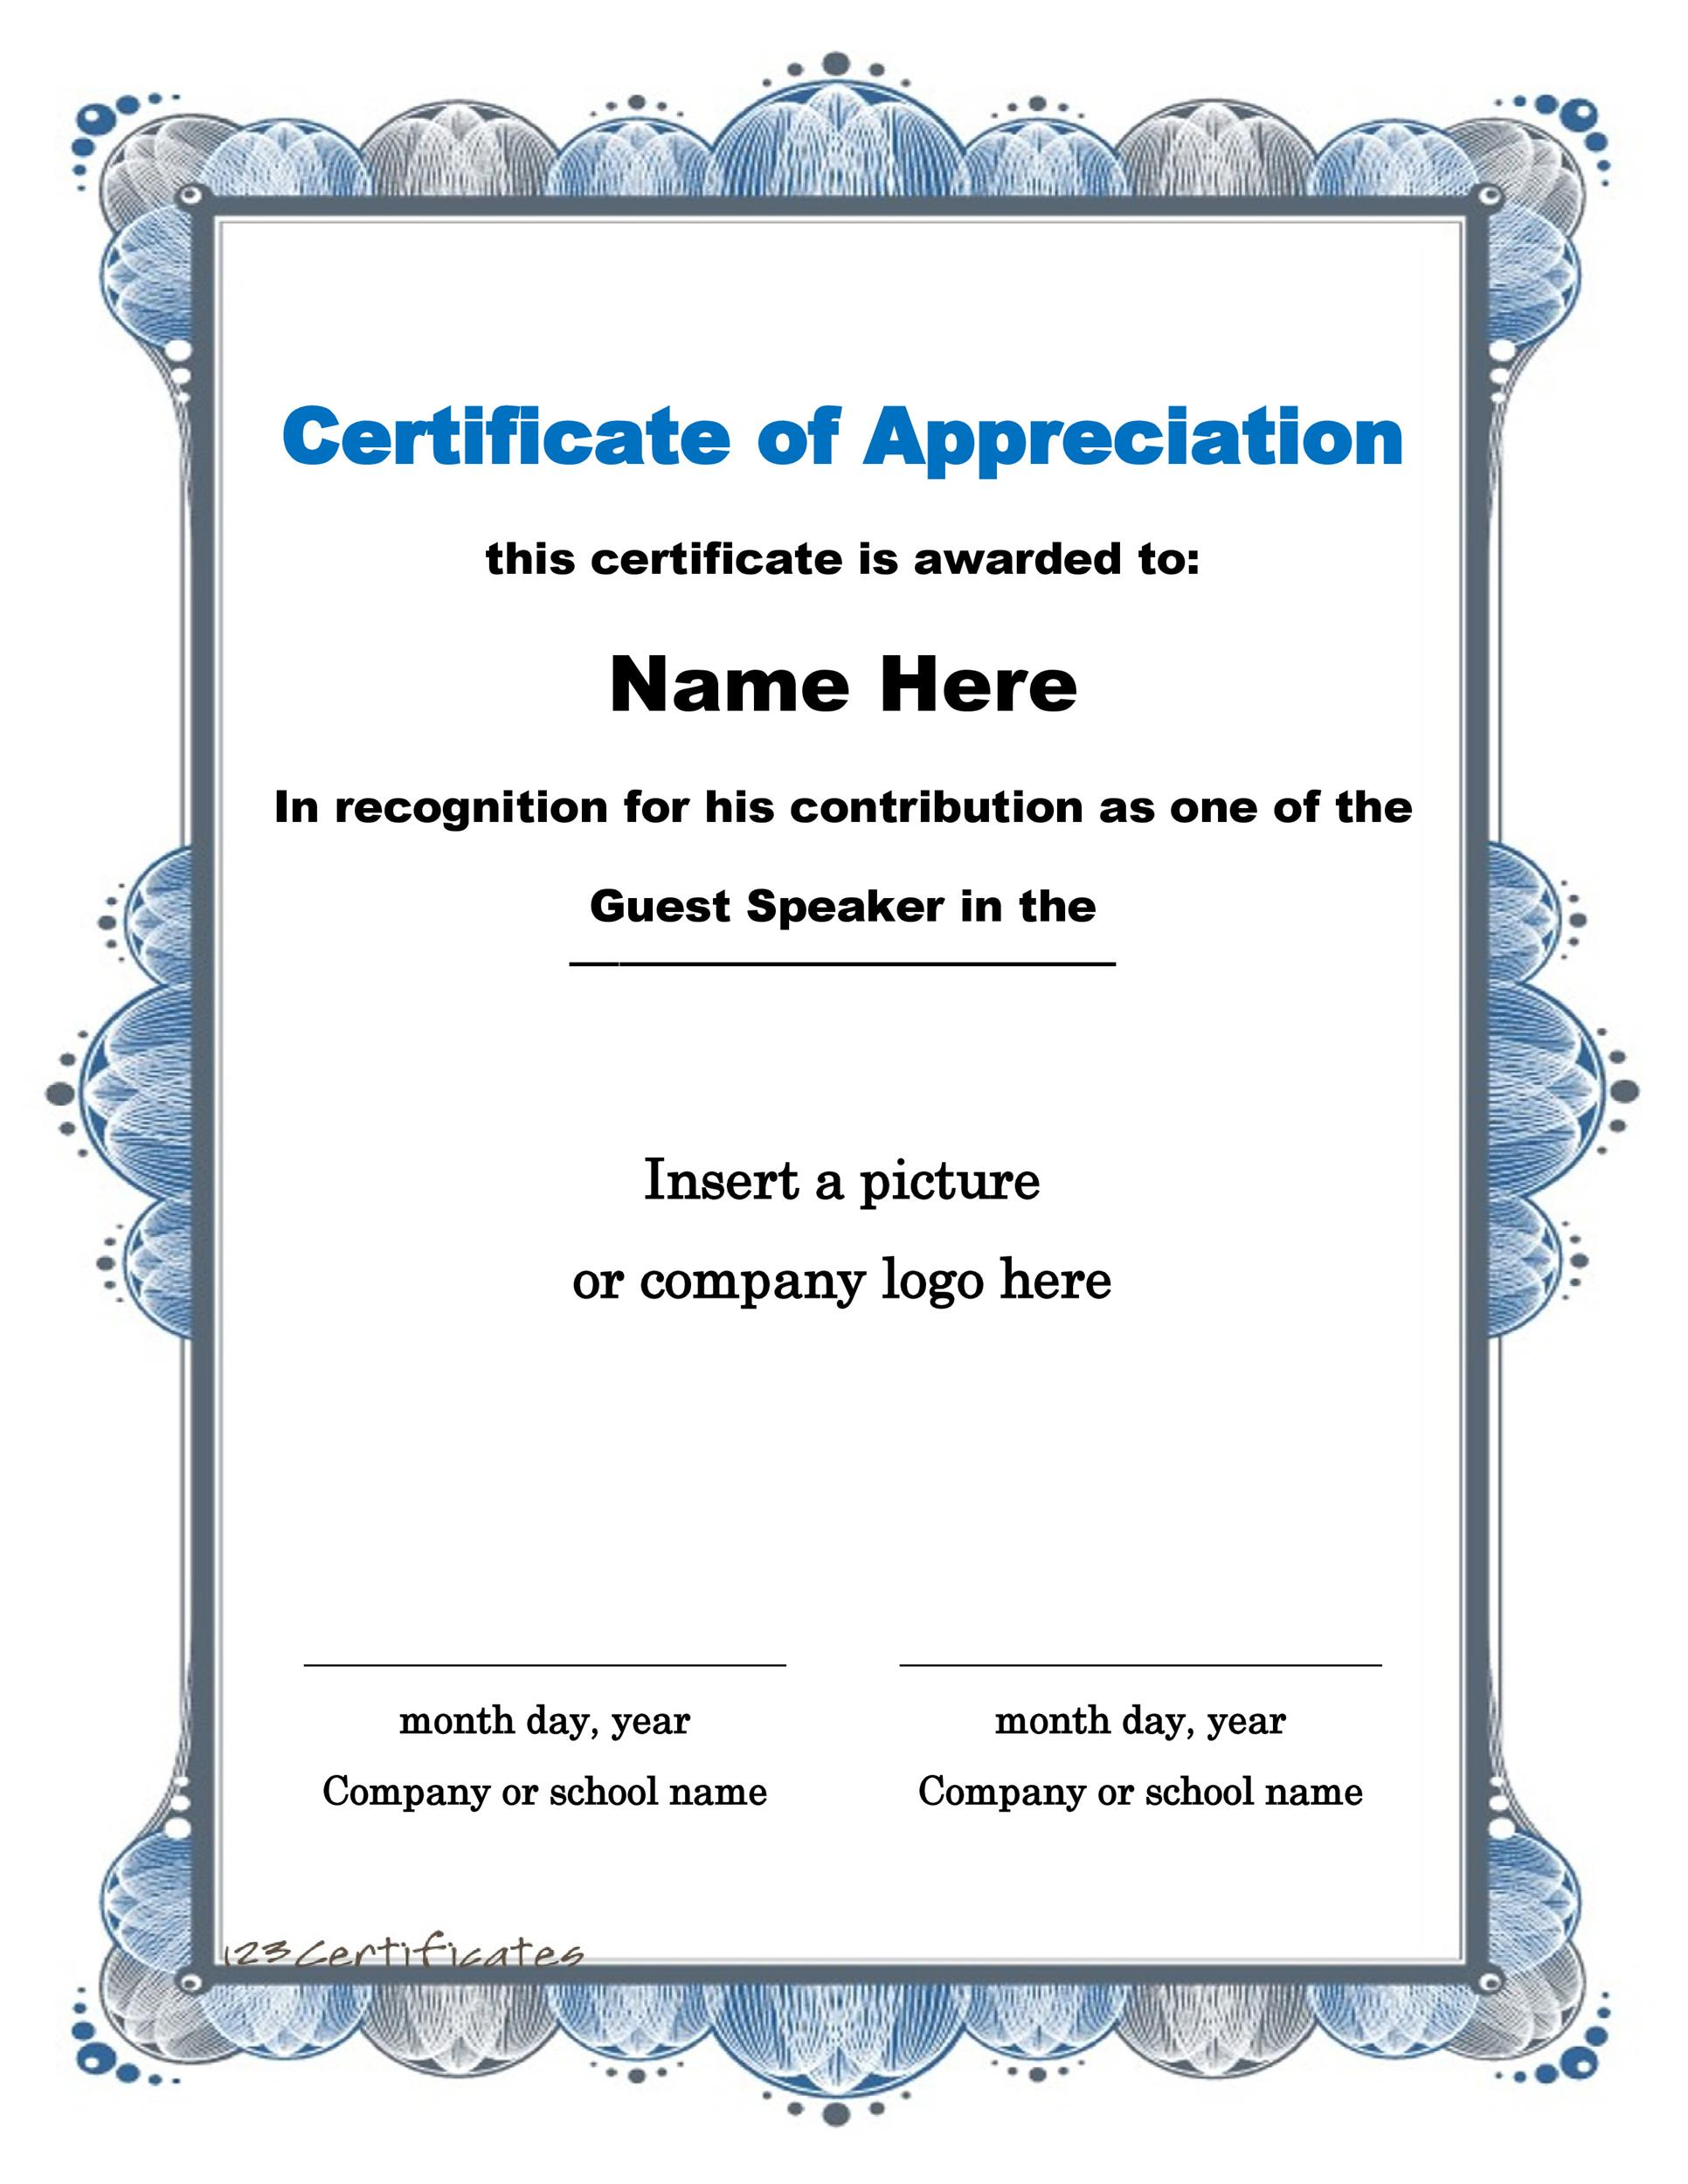 Free certificate of appreciation templates and letters 30 free certificate of appreciation templates and letters yadclub